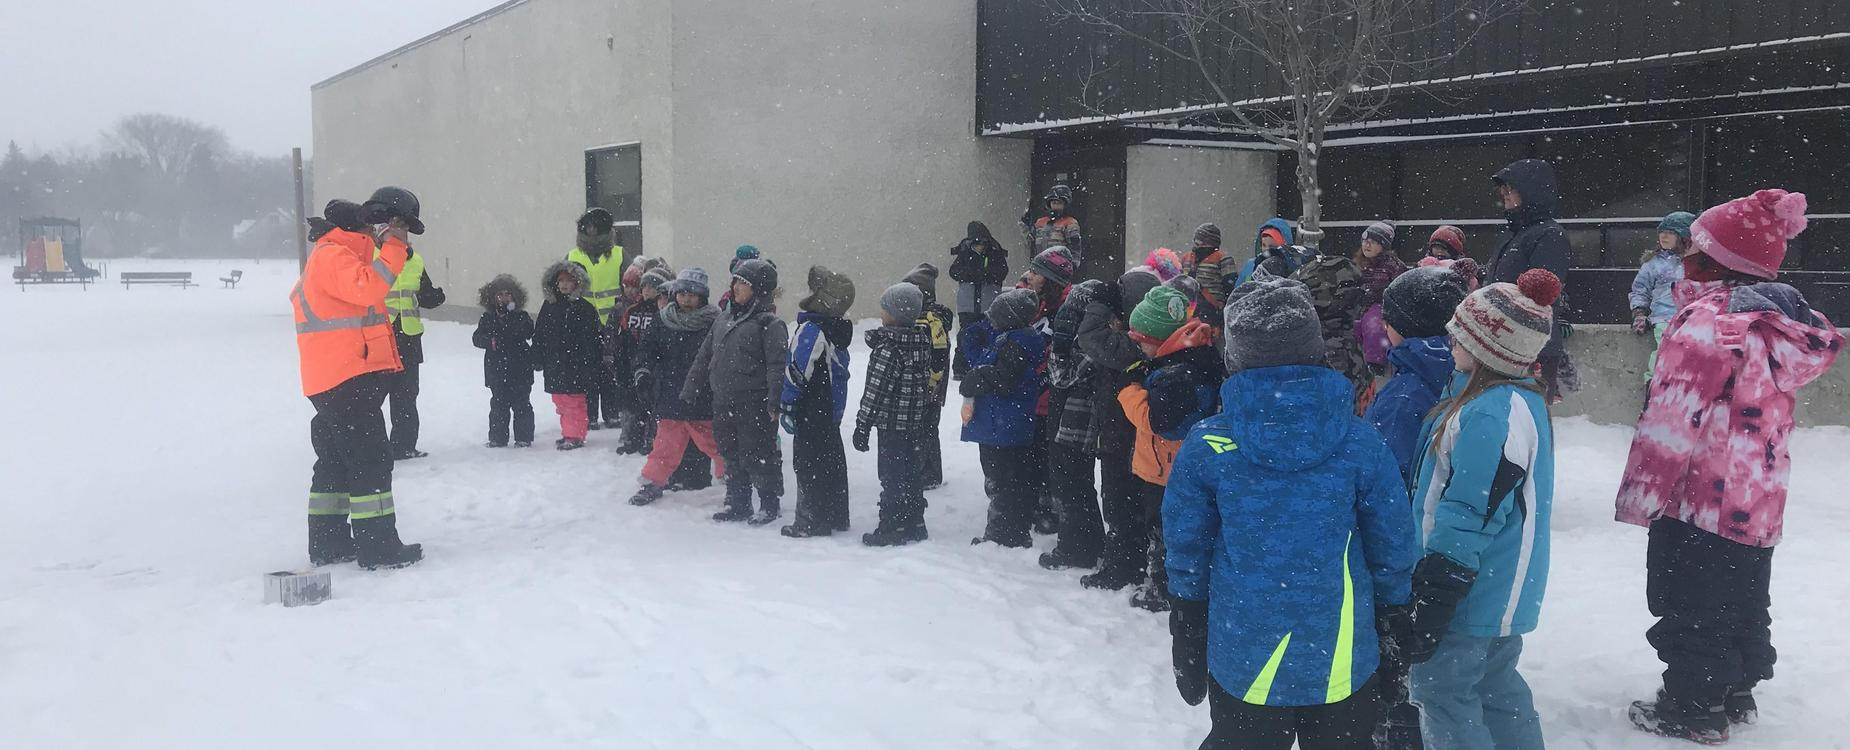 students standing outside in the snow learning about safety when operating equipment